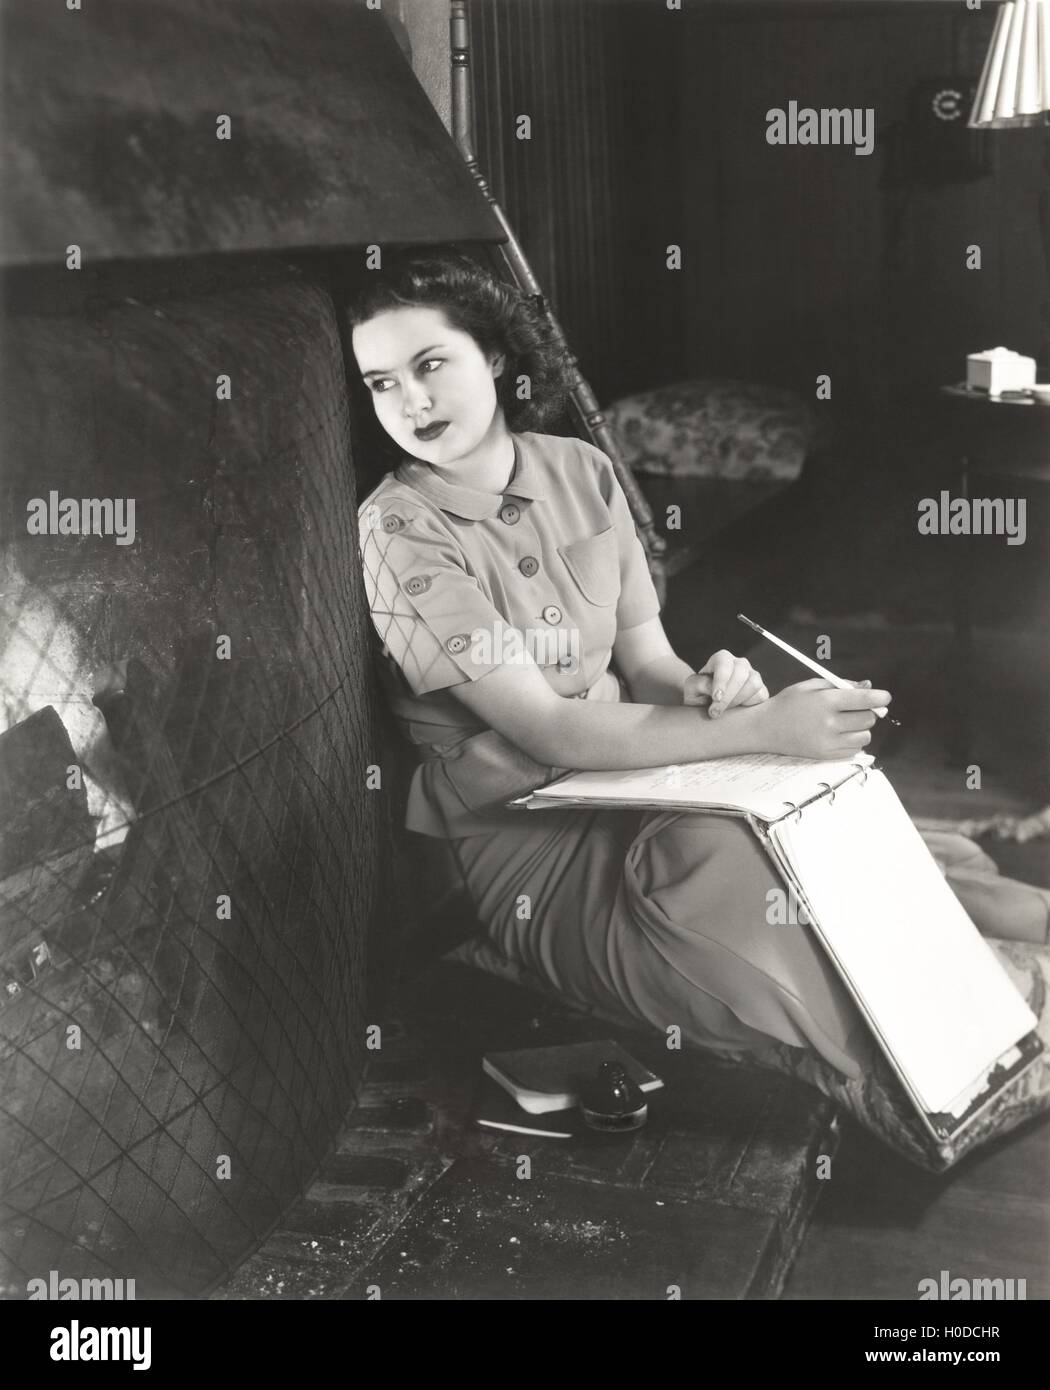 Woman with notebook daydreaming by fireplace - Stock Image